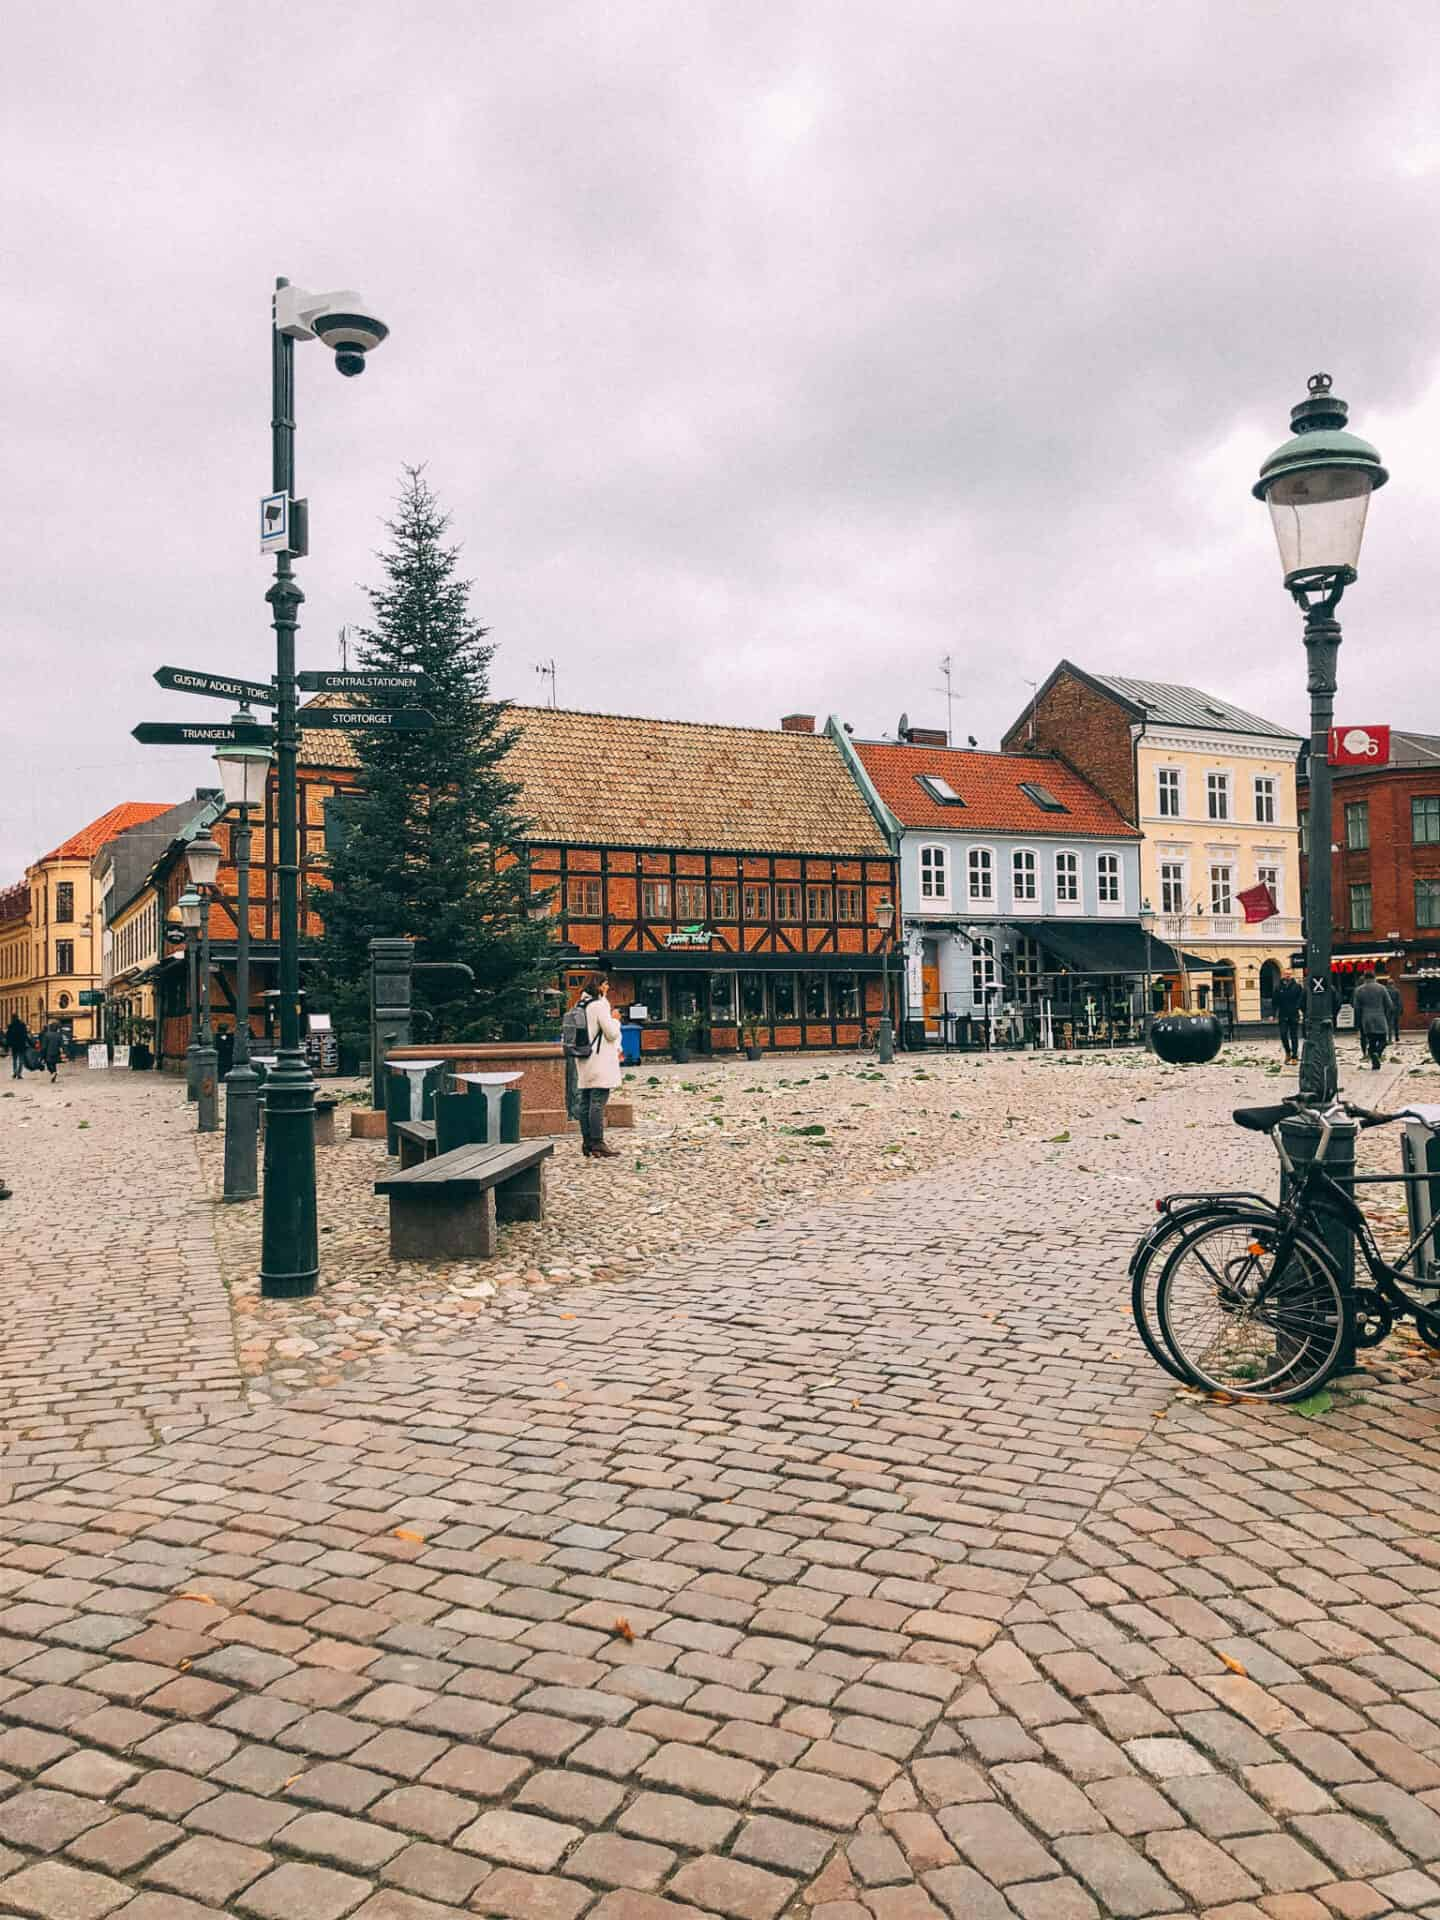 Things to do in Malmö - visit the city square